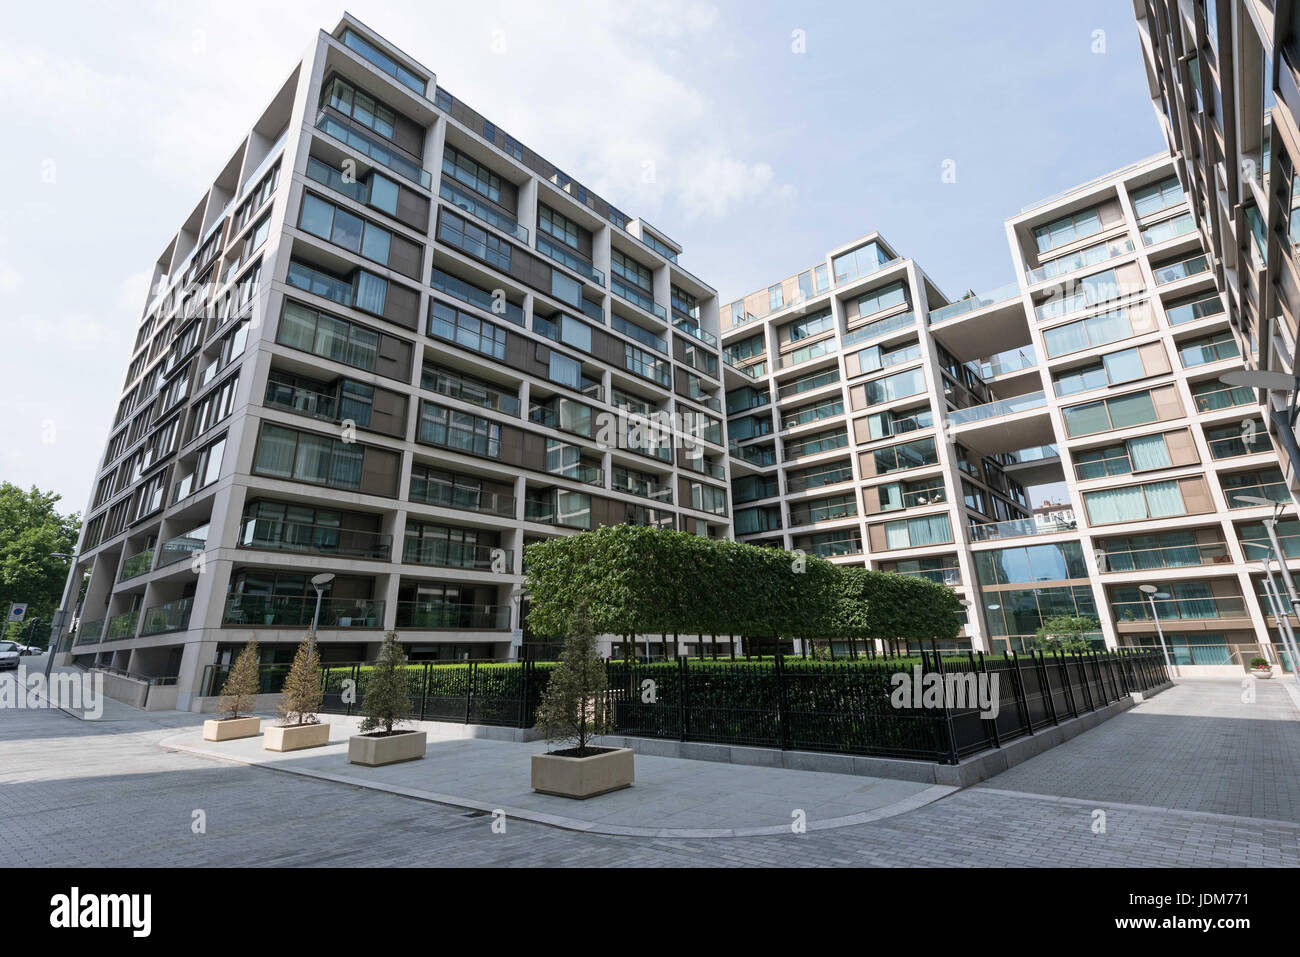 London, UK. 21st June, 2017. View of occupied apartment blocks in Kensington Row Complex. It was announced that Stock Photo